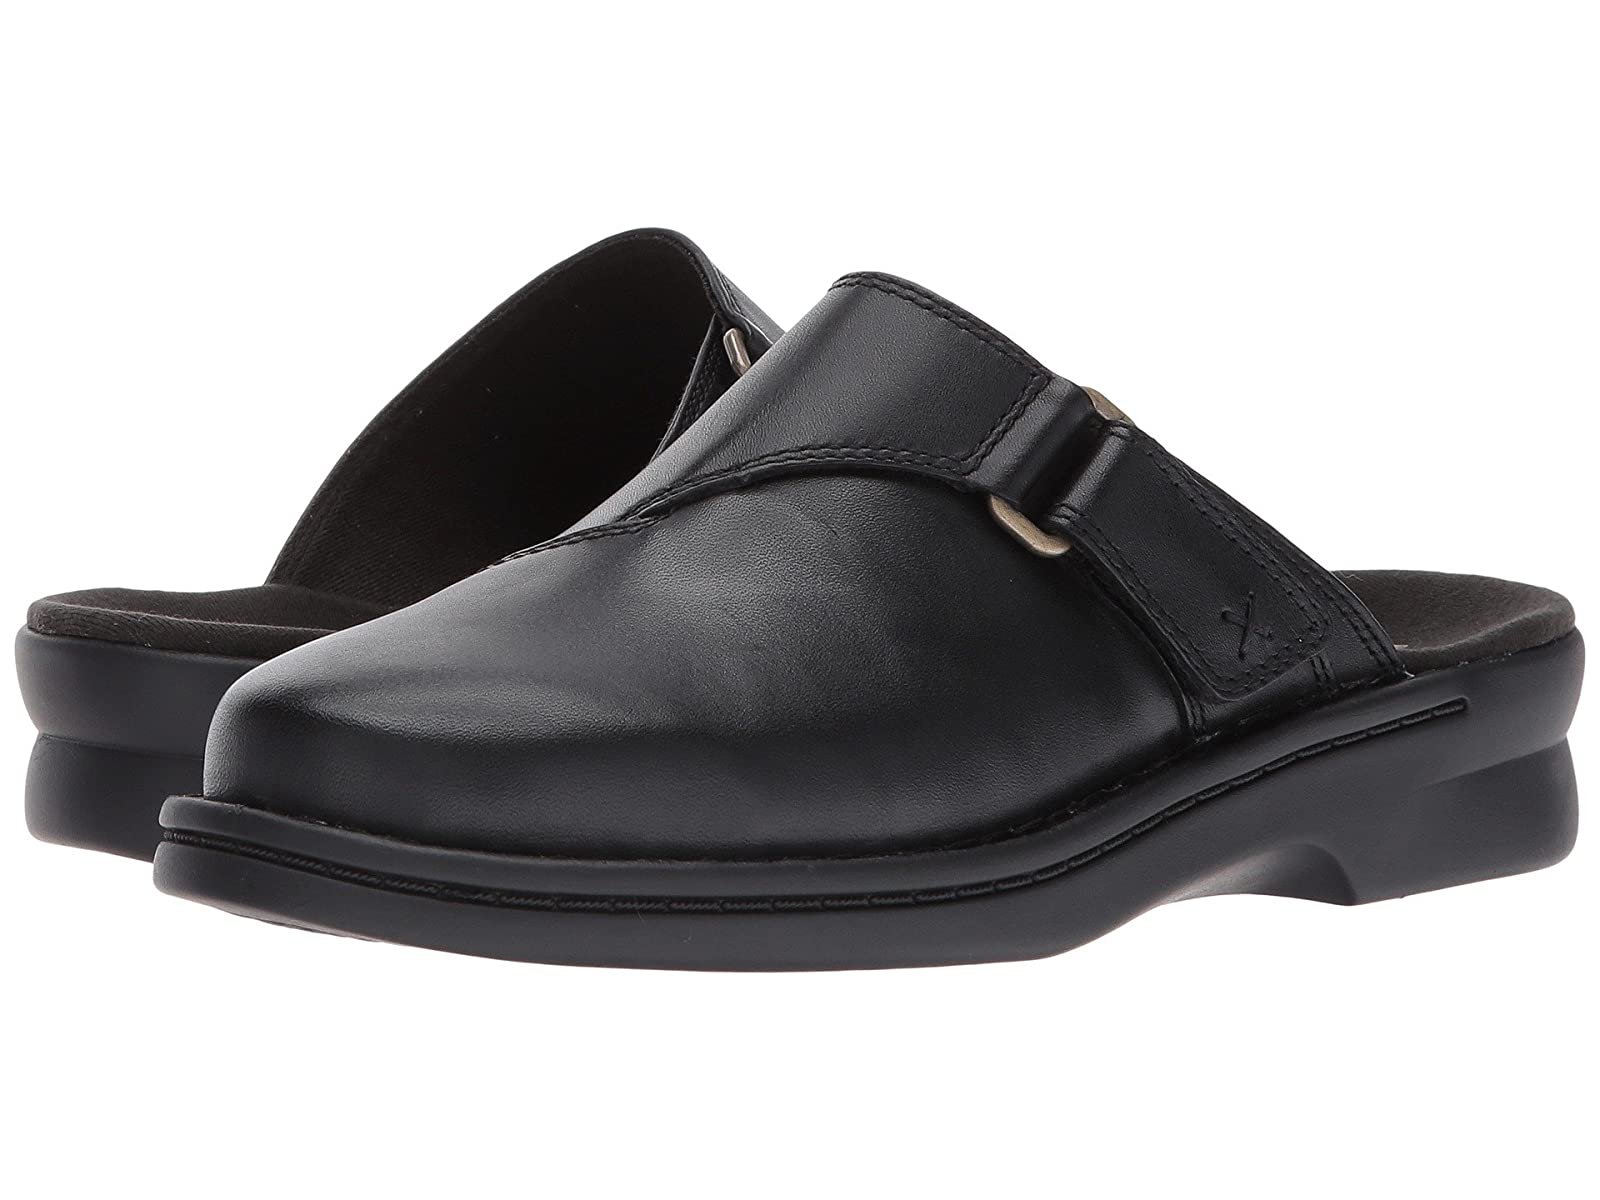 Clarks Patty NellCheap and distinctive eye-catching shoes